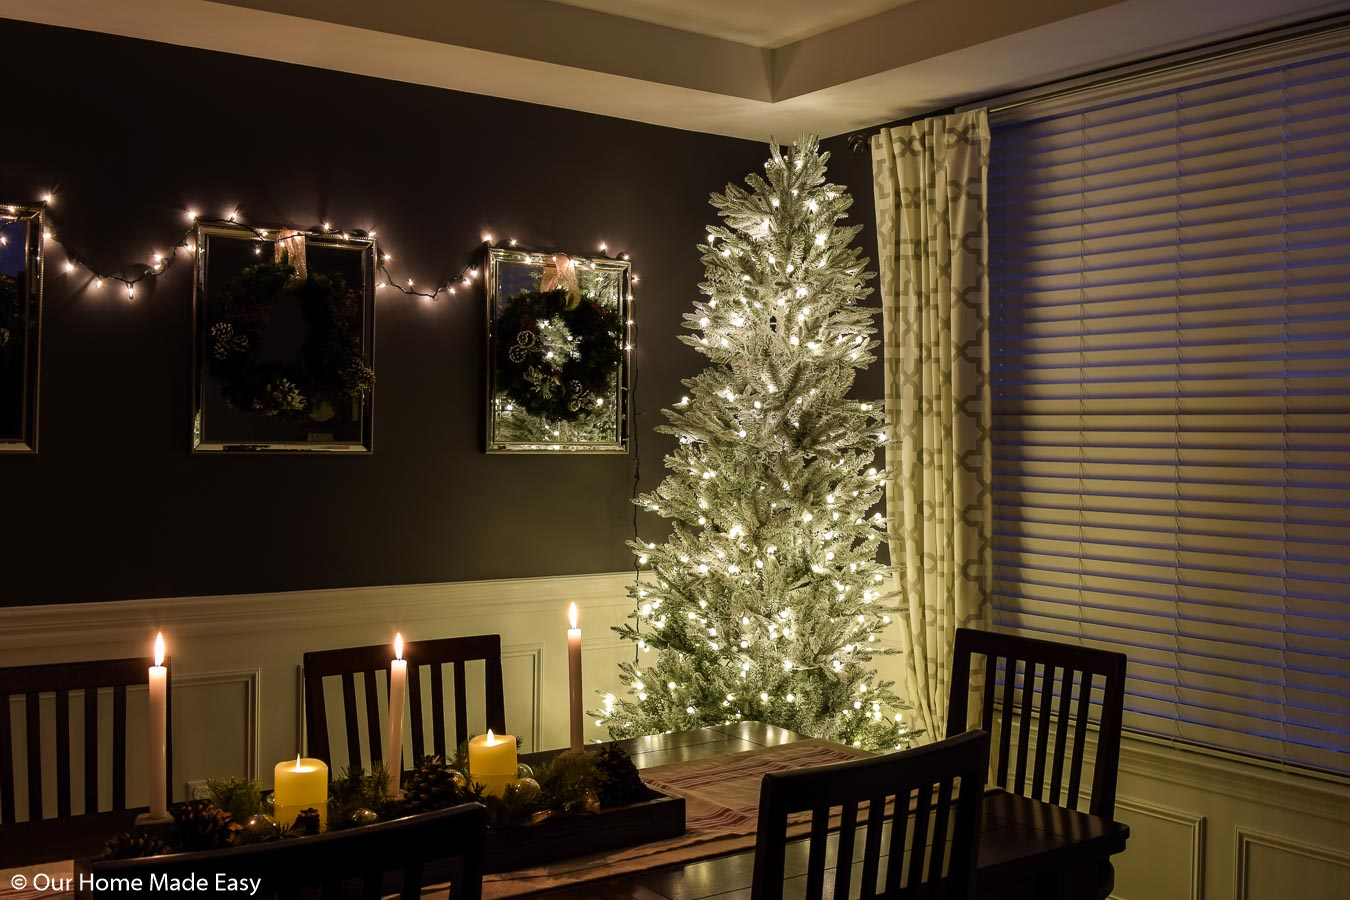 This white frosted branch Christmas tree is our dining room Christmas decoration, adorned in simple white Christmas lights